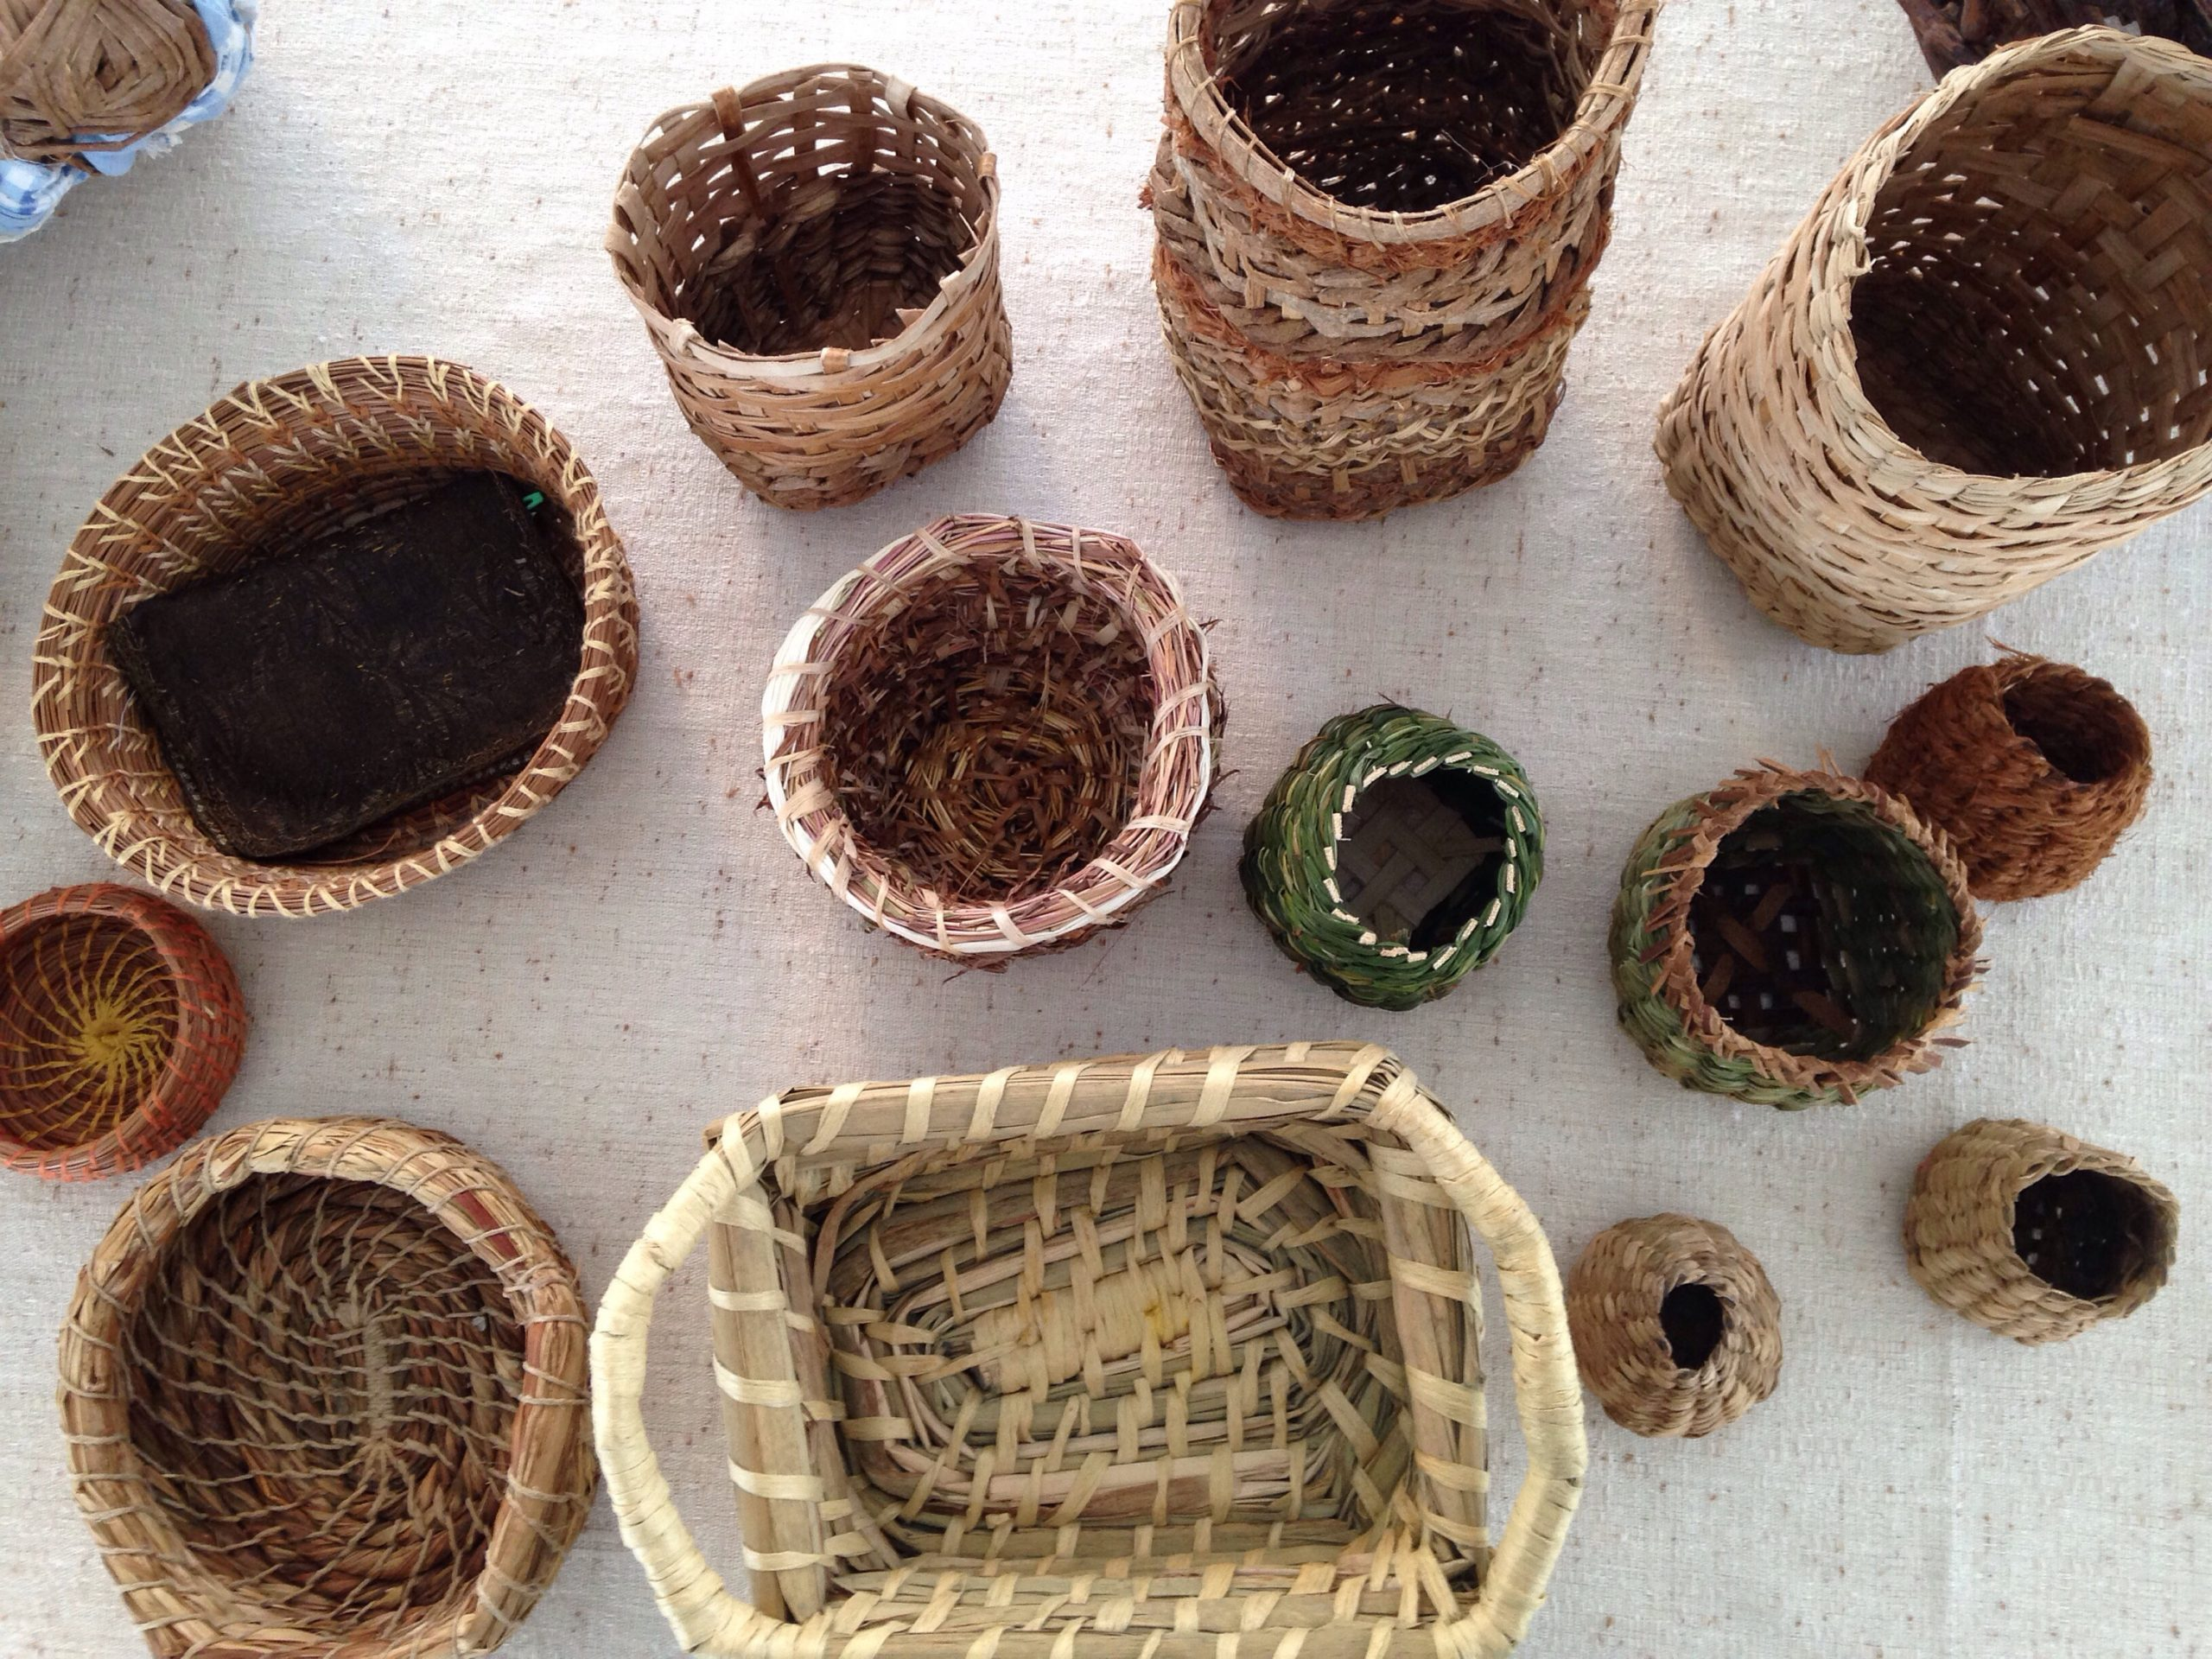 Basketry Workshop At The Nys Sheep And Wool Festival